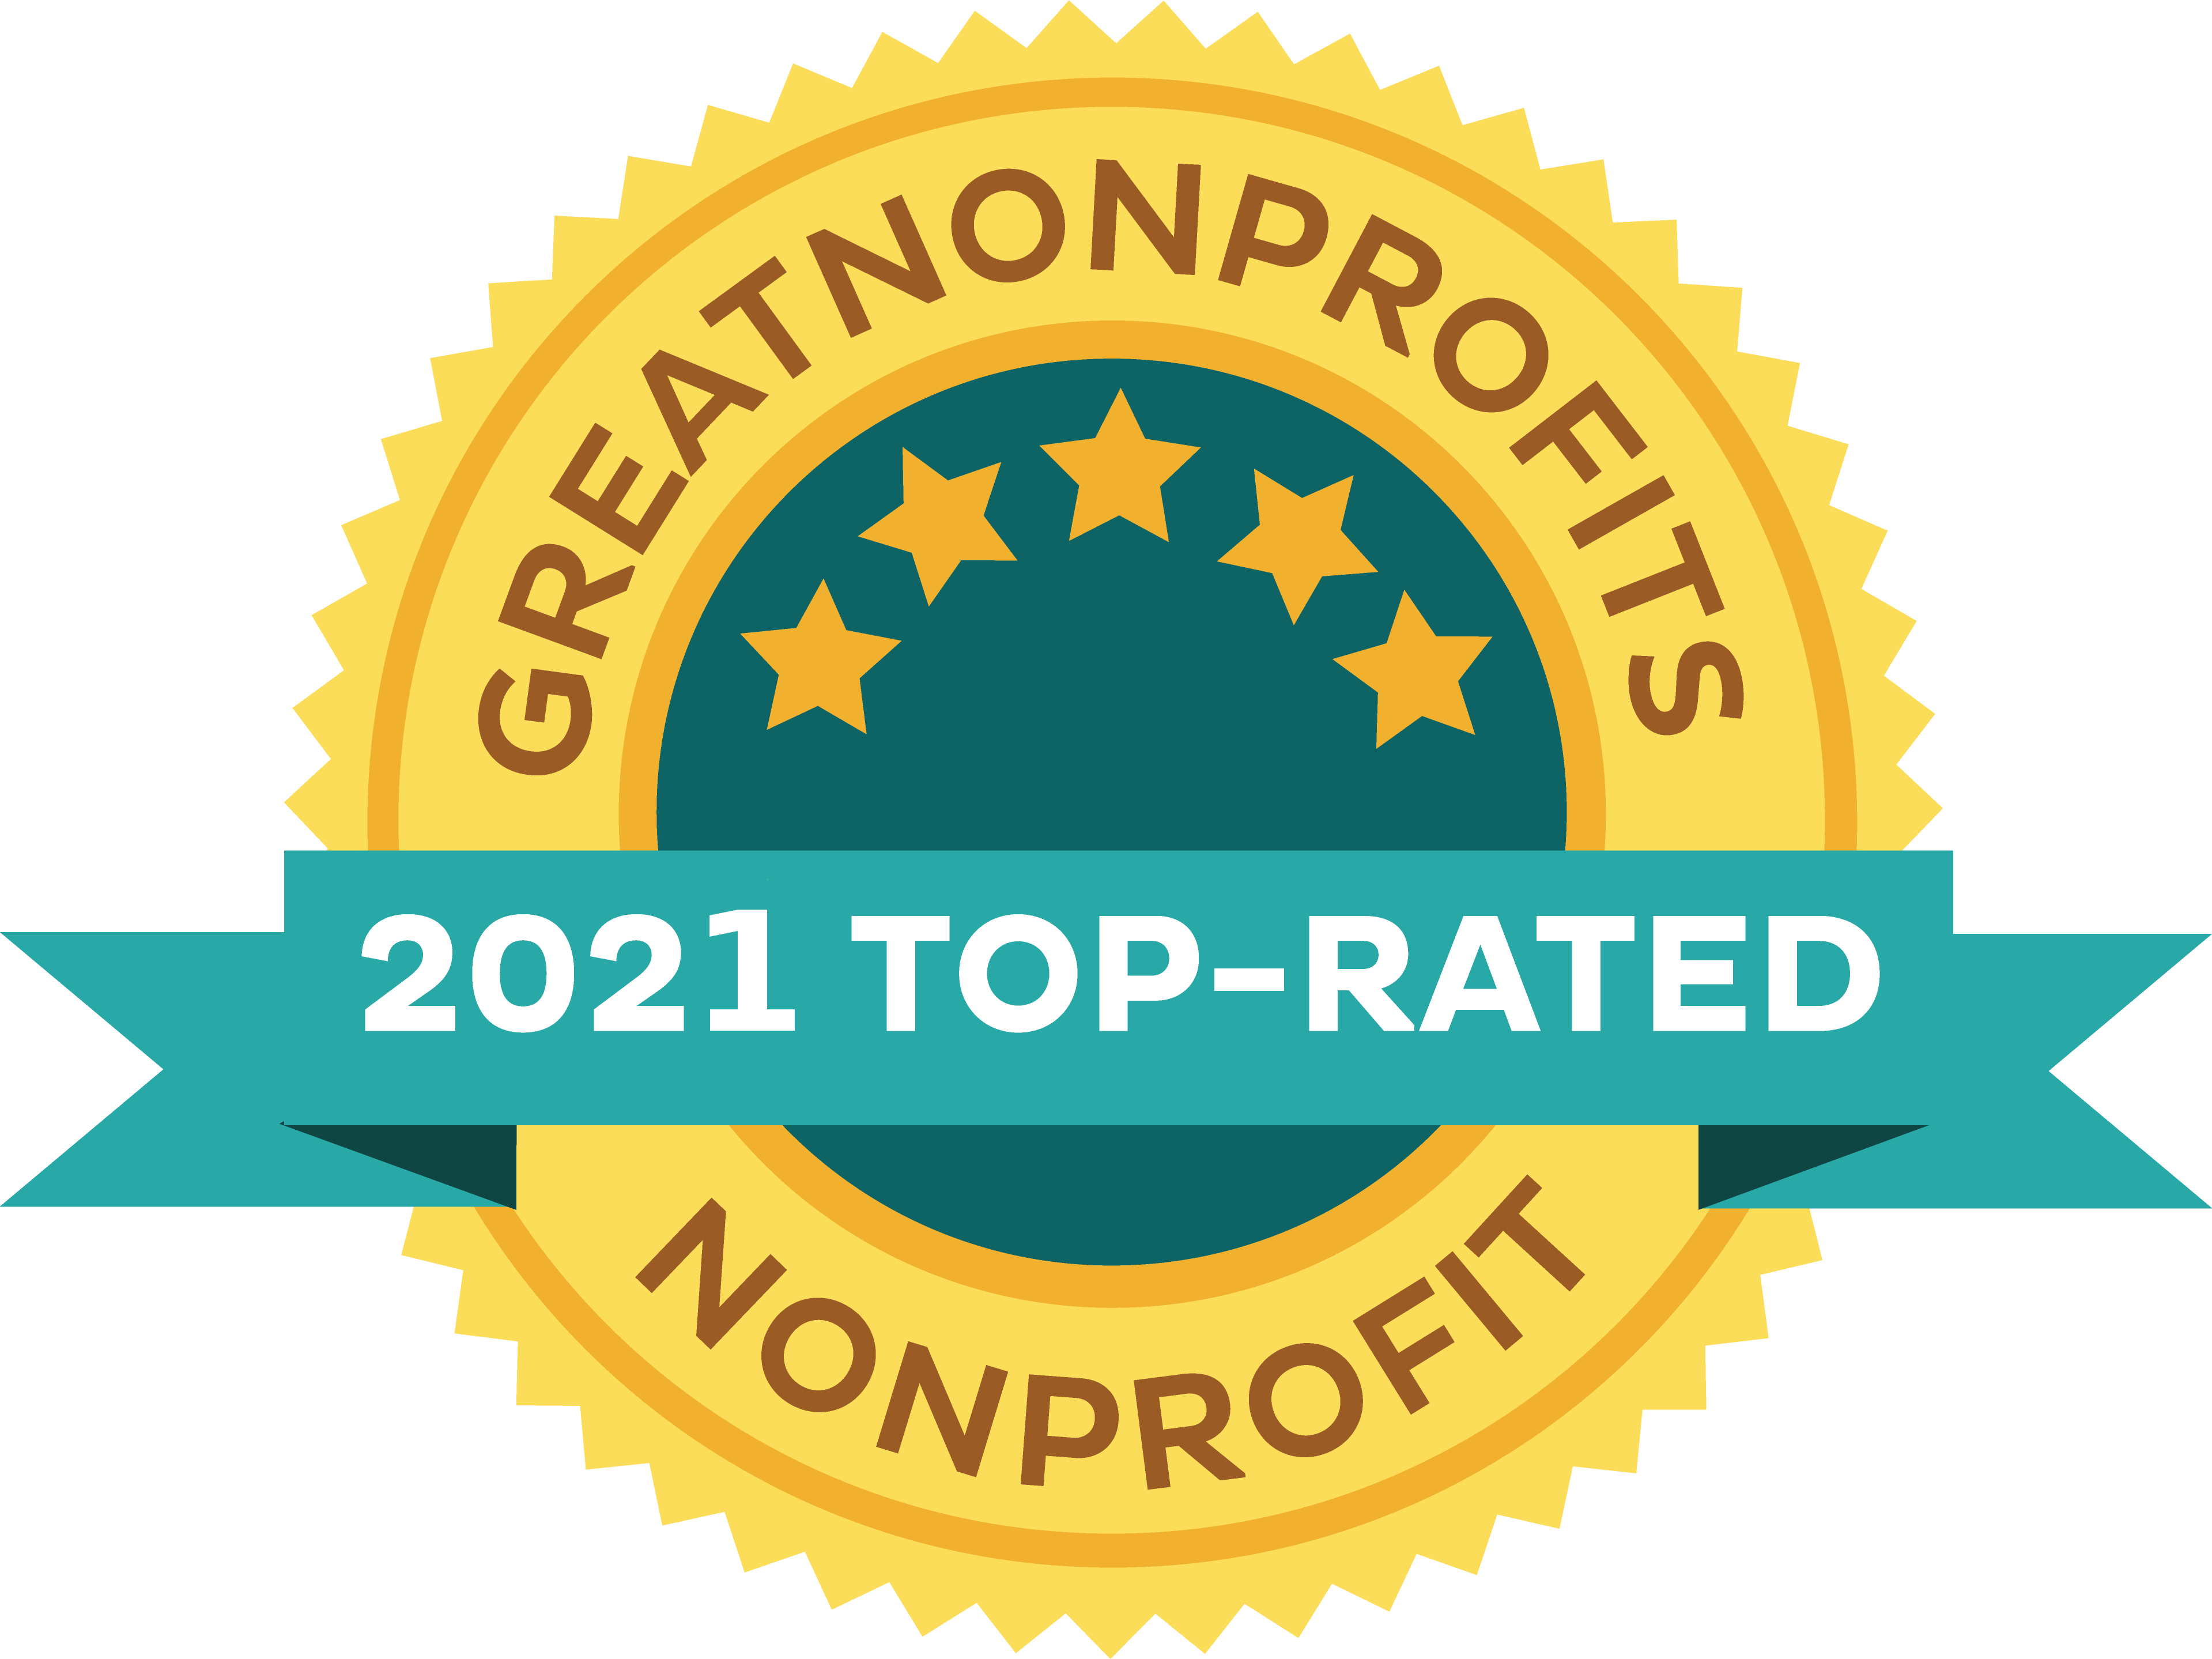 Graphic: Great Nonprofits 2021 Top Rated Nonprofit